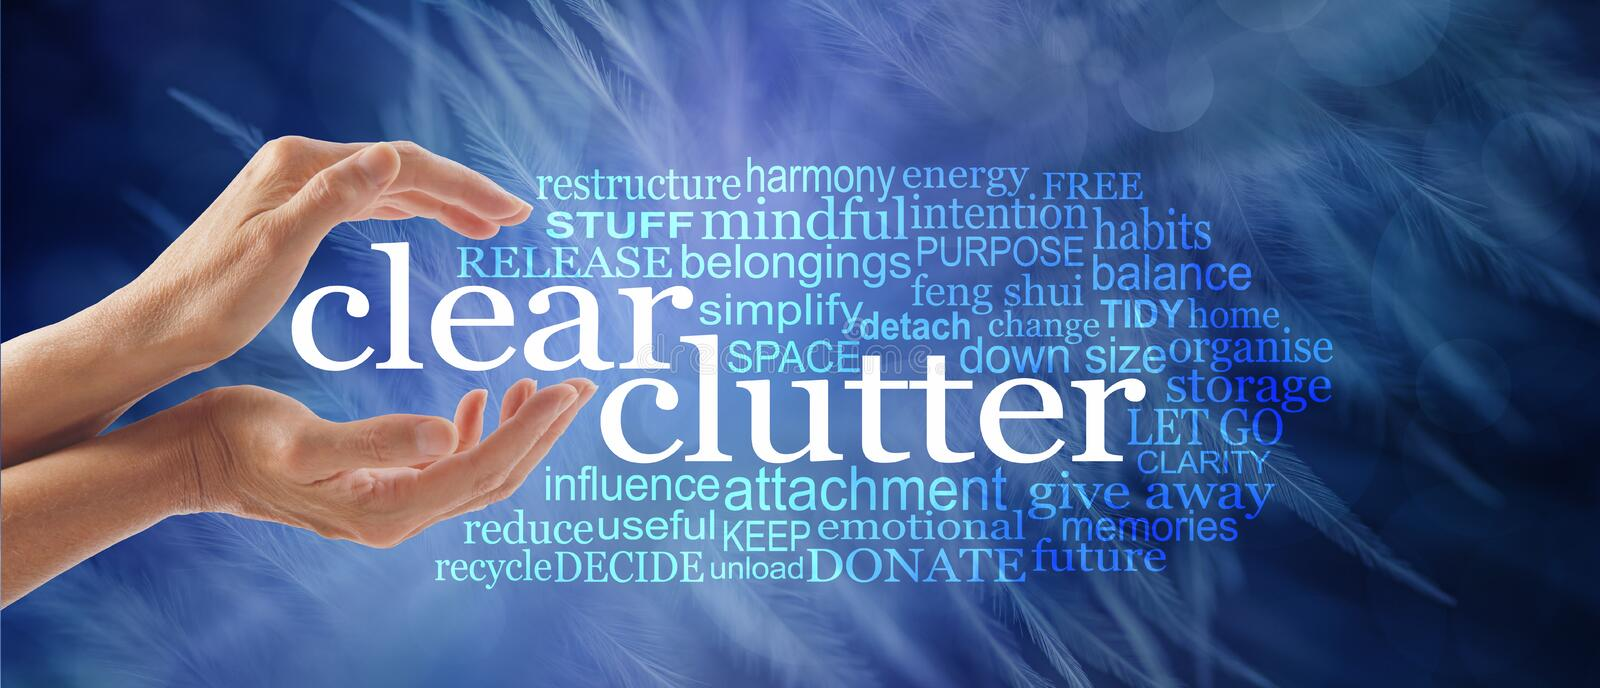 Make space in your life and clear your clutter vector illustration